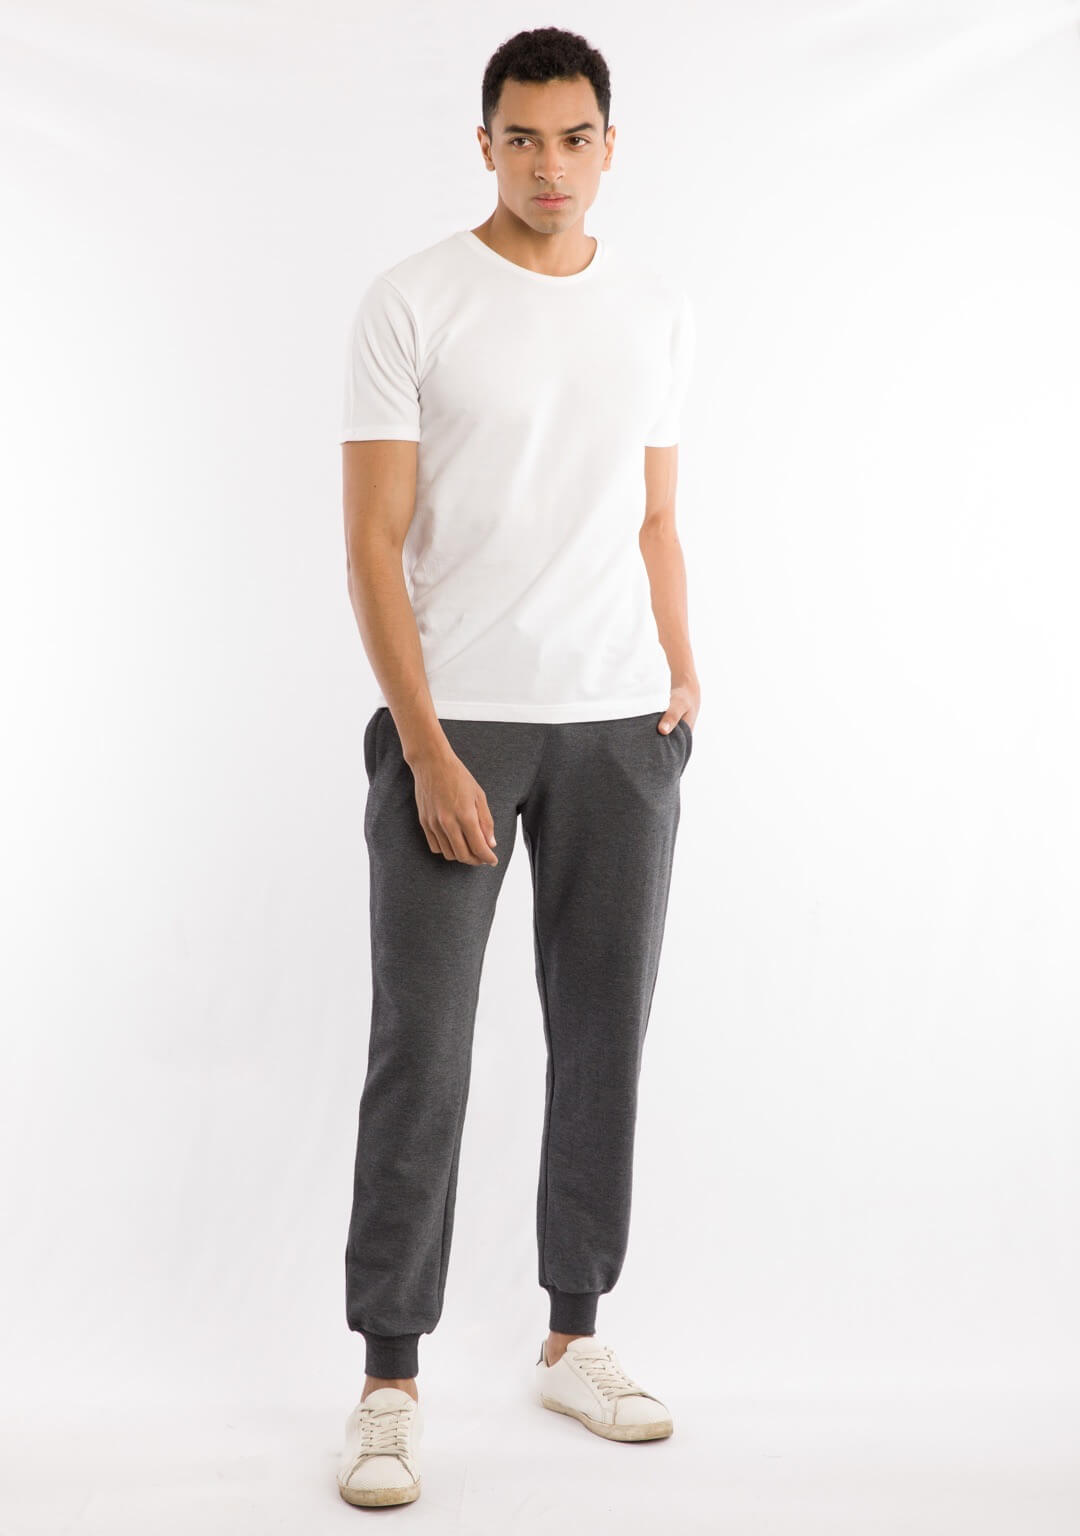 Jogger in Anthracite Mélange